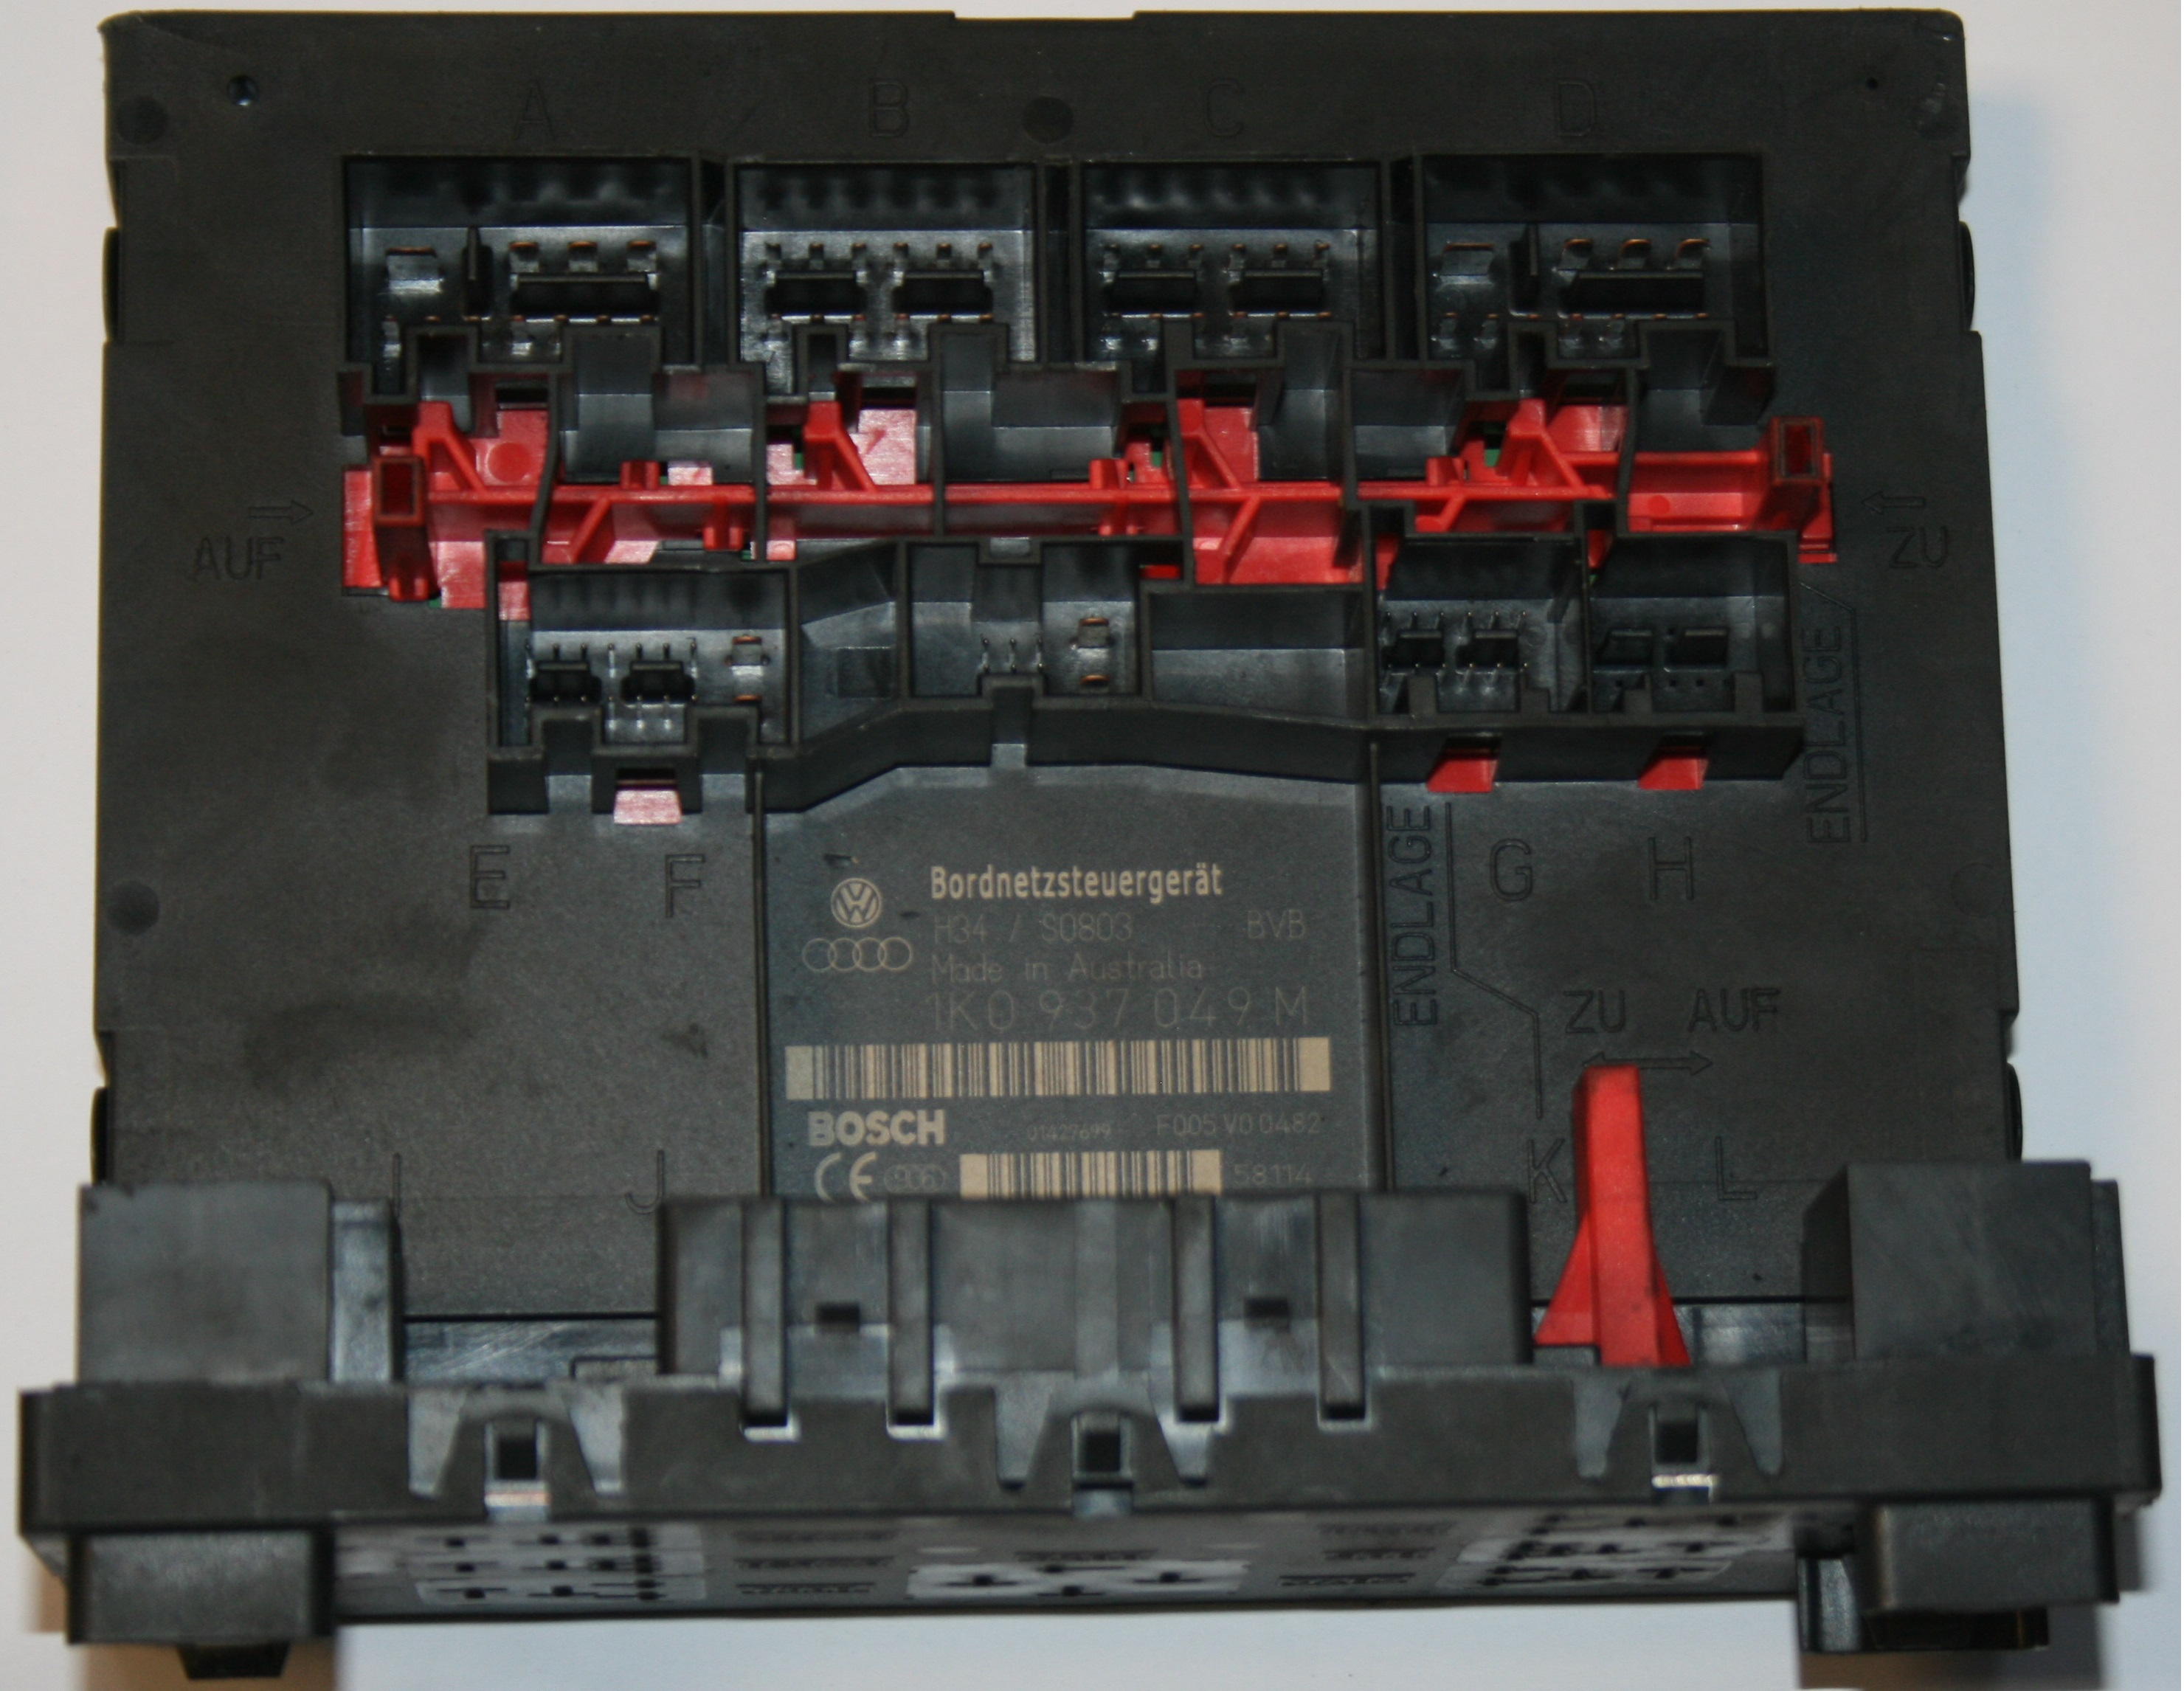 00393 used genuine vw golf central control fuse box 1k0 937 049 n mk5 golf fuse box diagram at bayanpartner.co